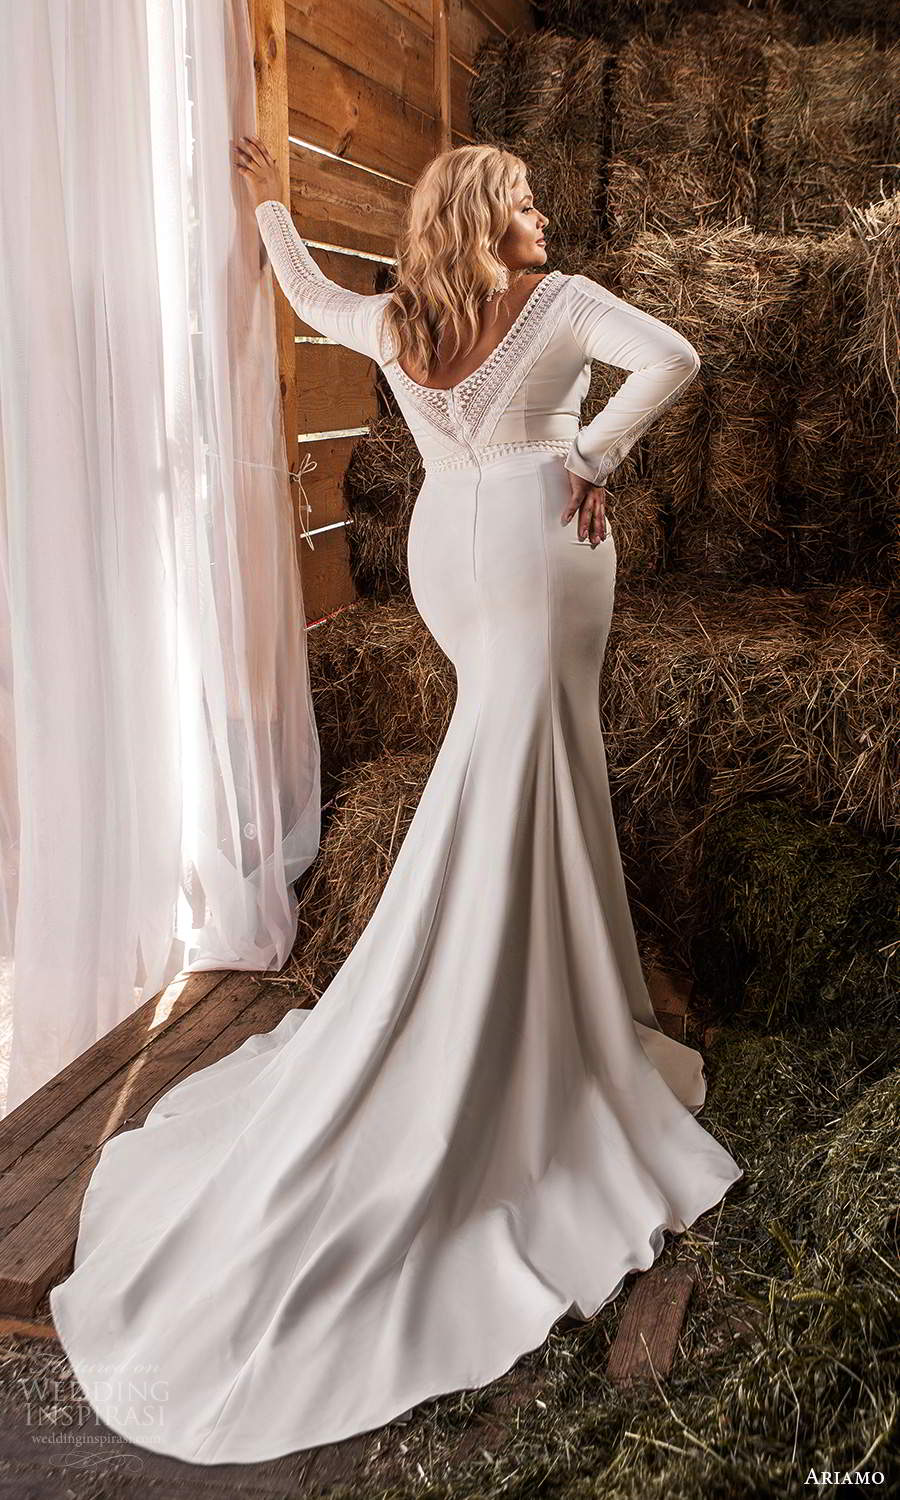 ariamo 2021 plus bridal long sleeves plunging v neckline clean minimalist mermaid sheath wedding dress chapel train (4) bv